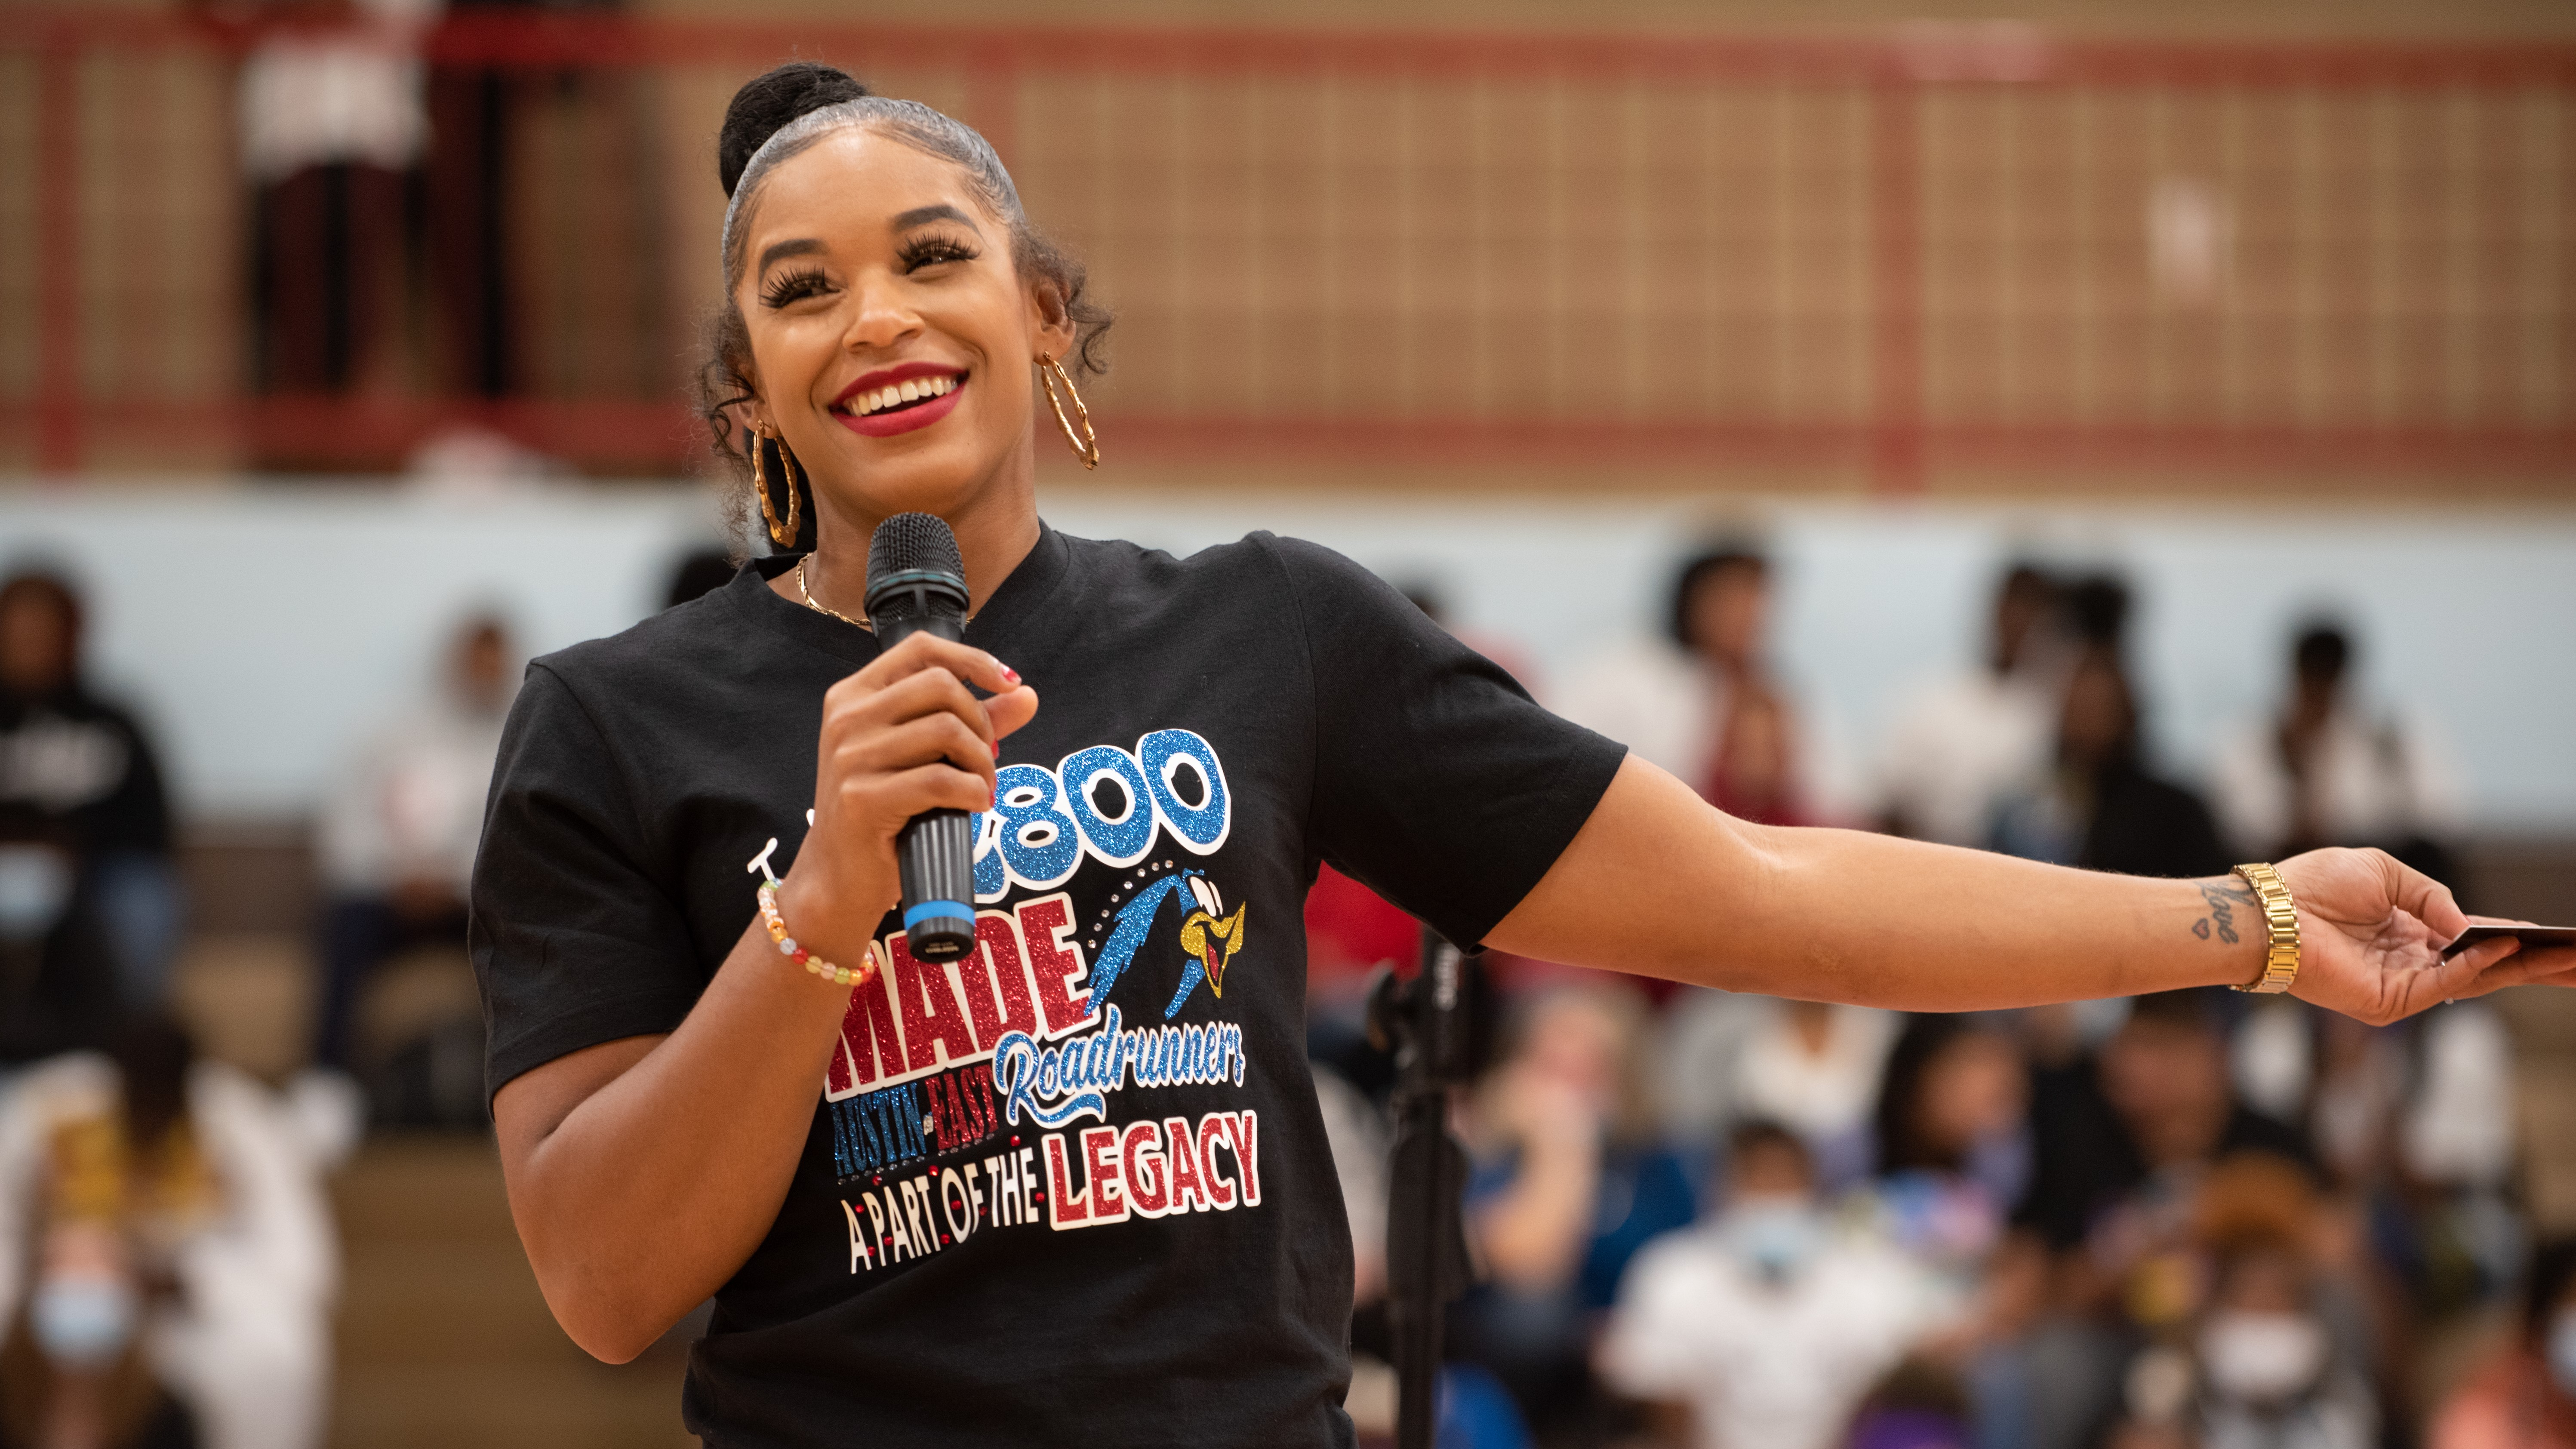 On Sept. 16, WWE Superstar and Austin-East graduate Bianca Belair visited the school for a Homecoming pep rally.